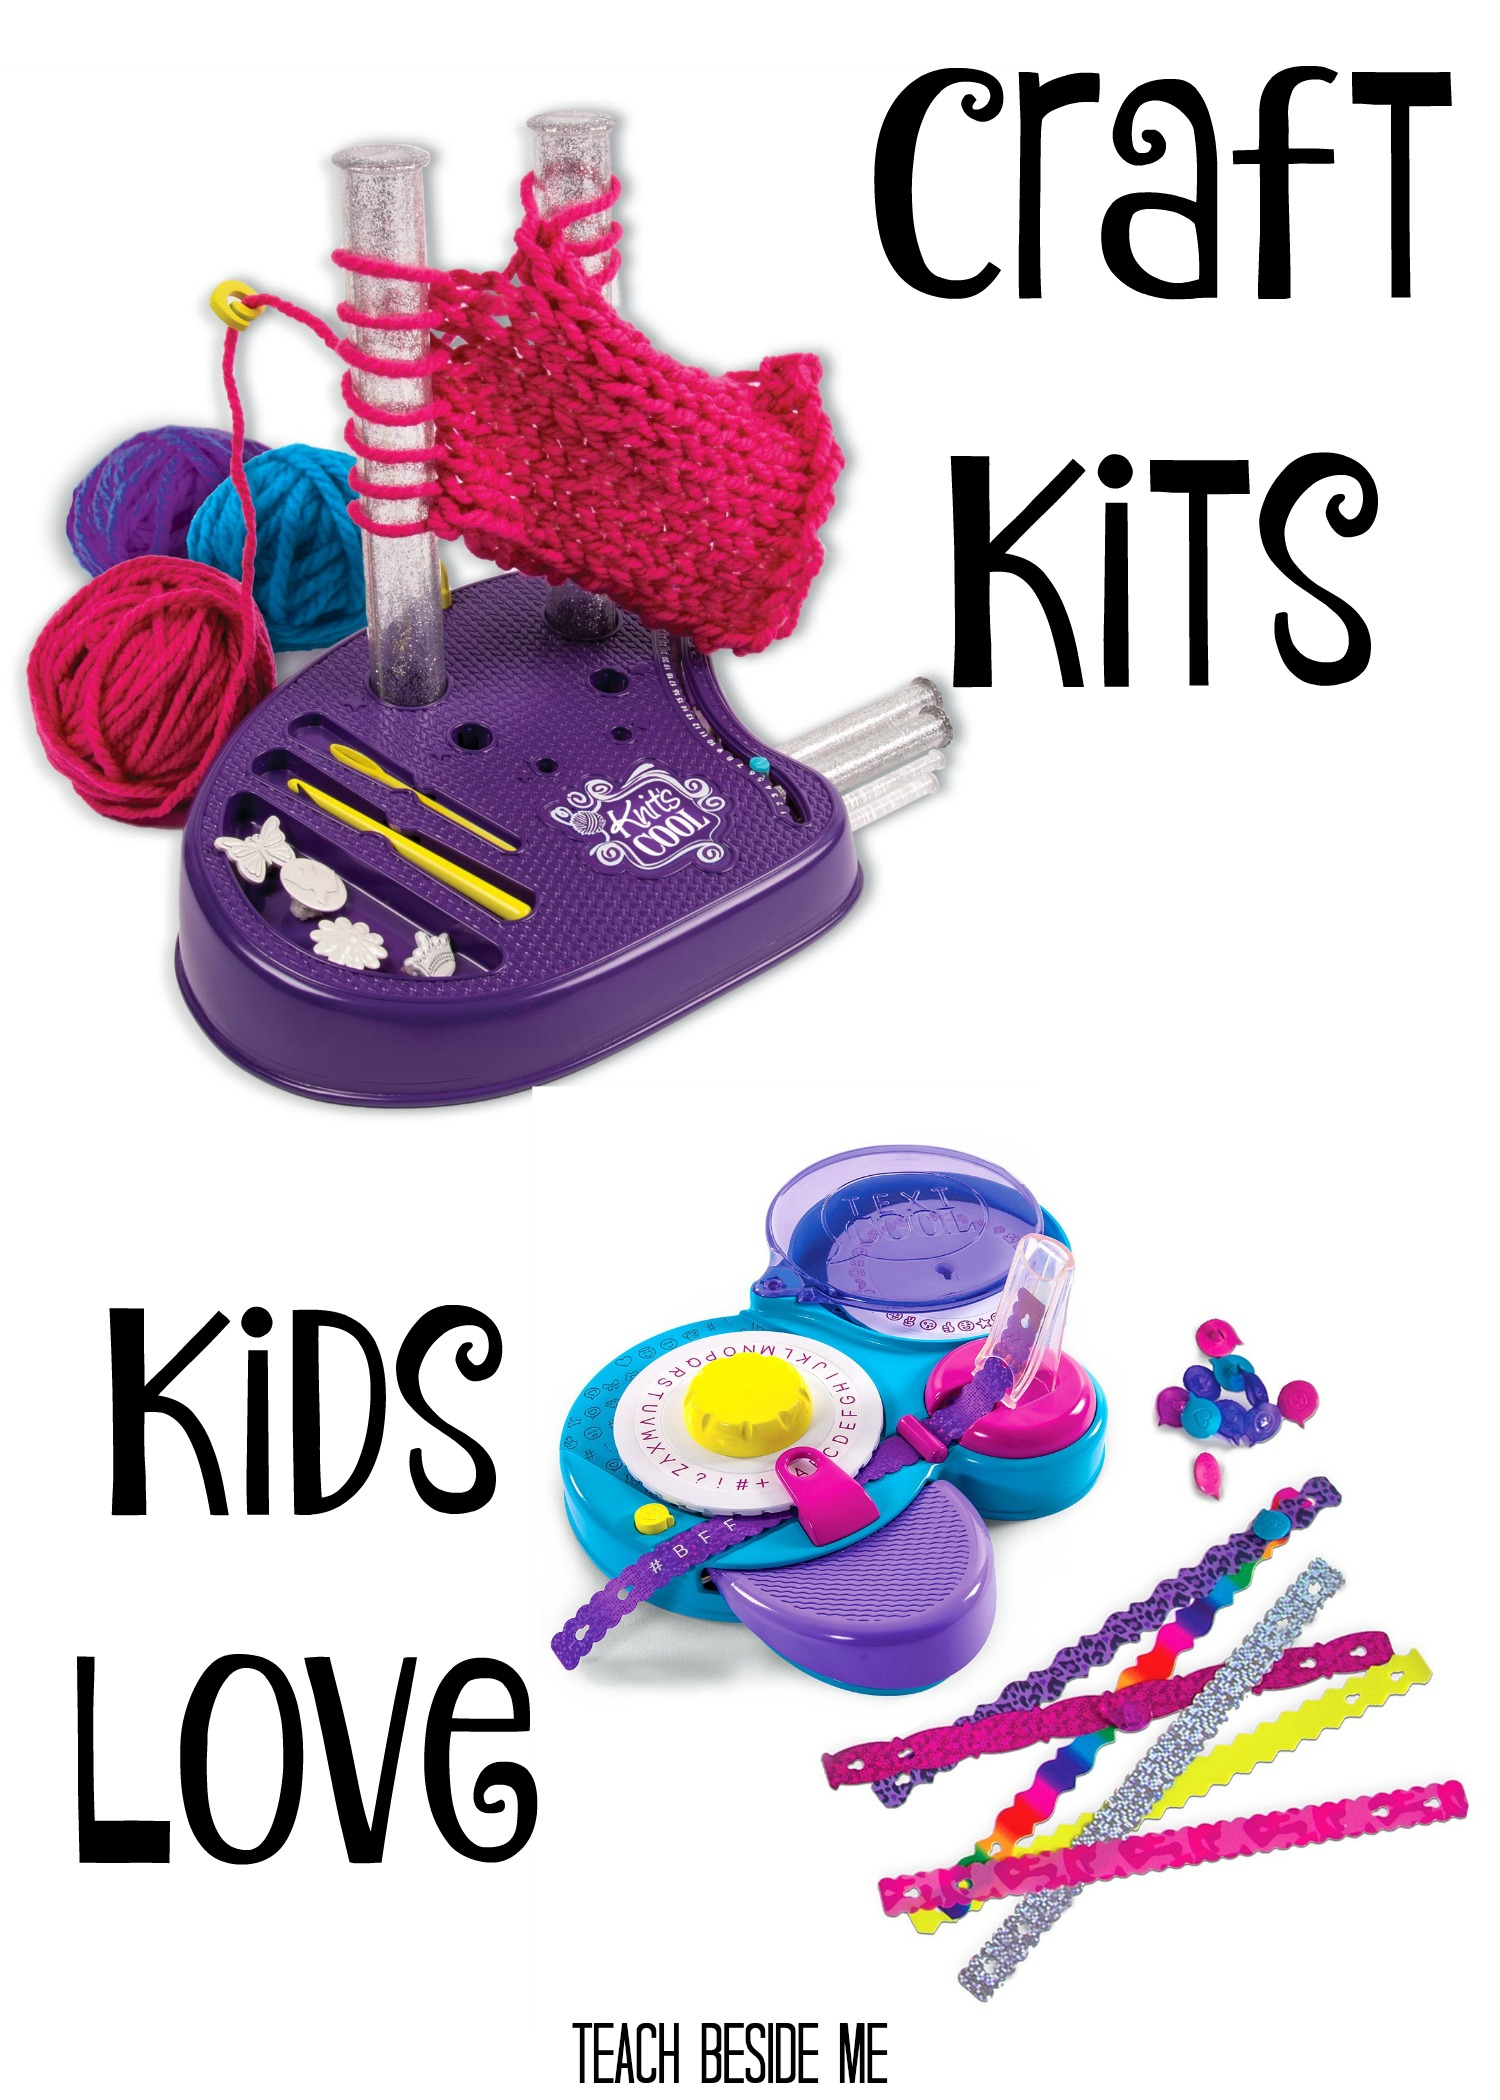 Craft kits for 4 year olds - Best Craft Kits For 6 Year Olds Best Craft Kits For Kids Kids Craft Kits